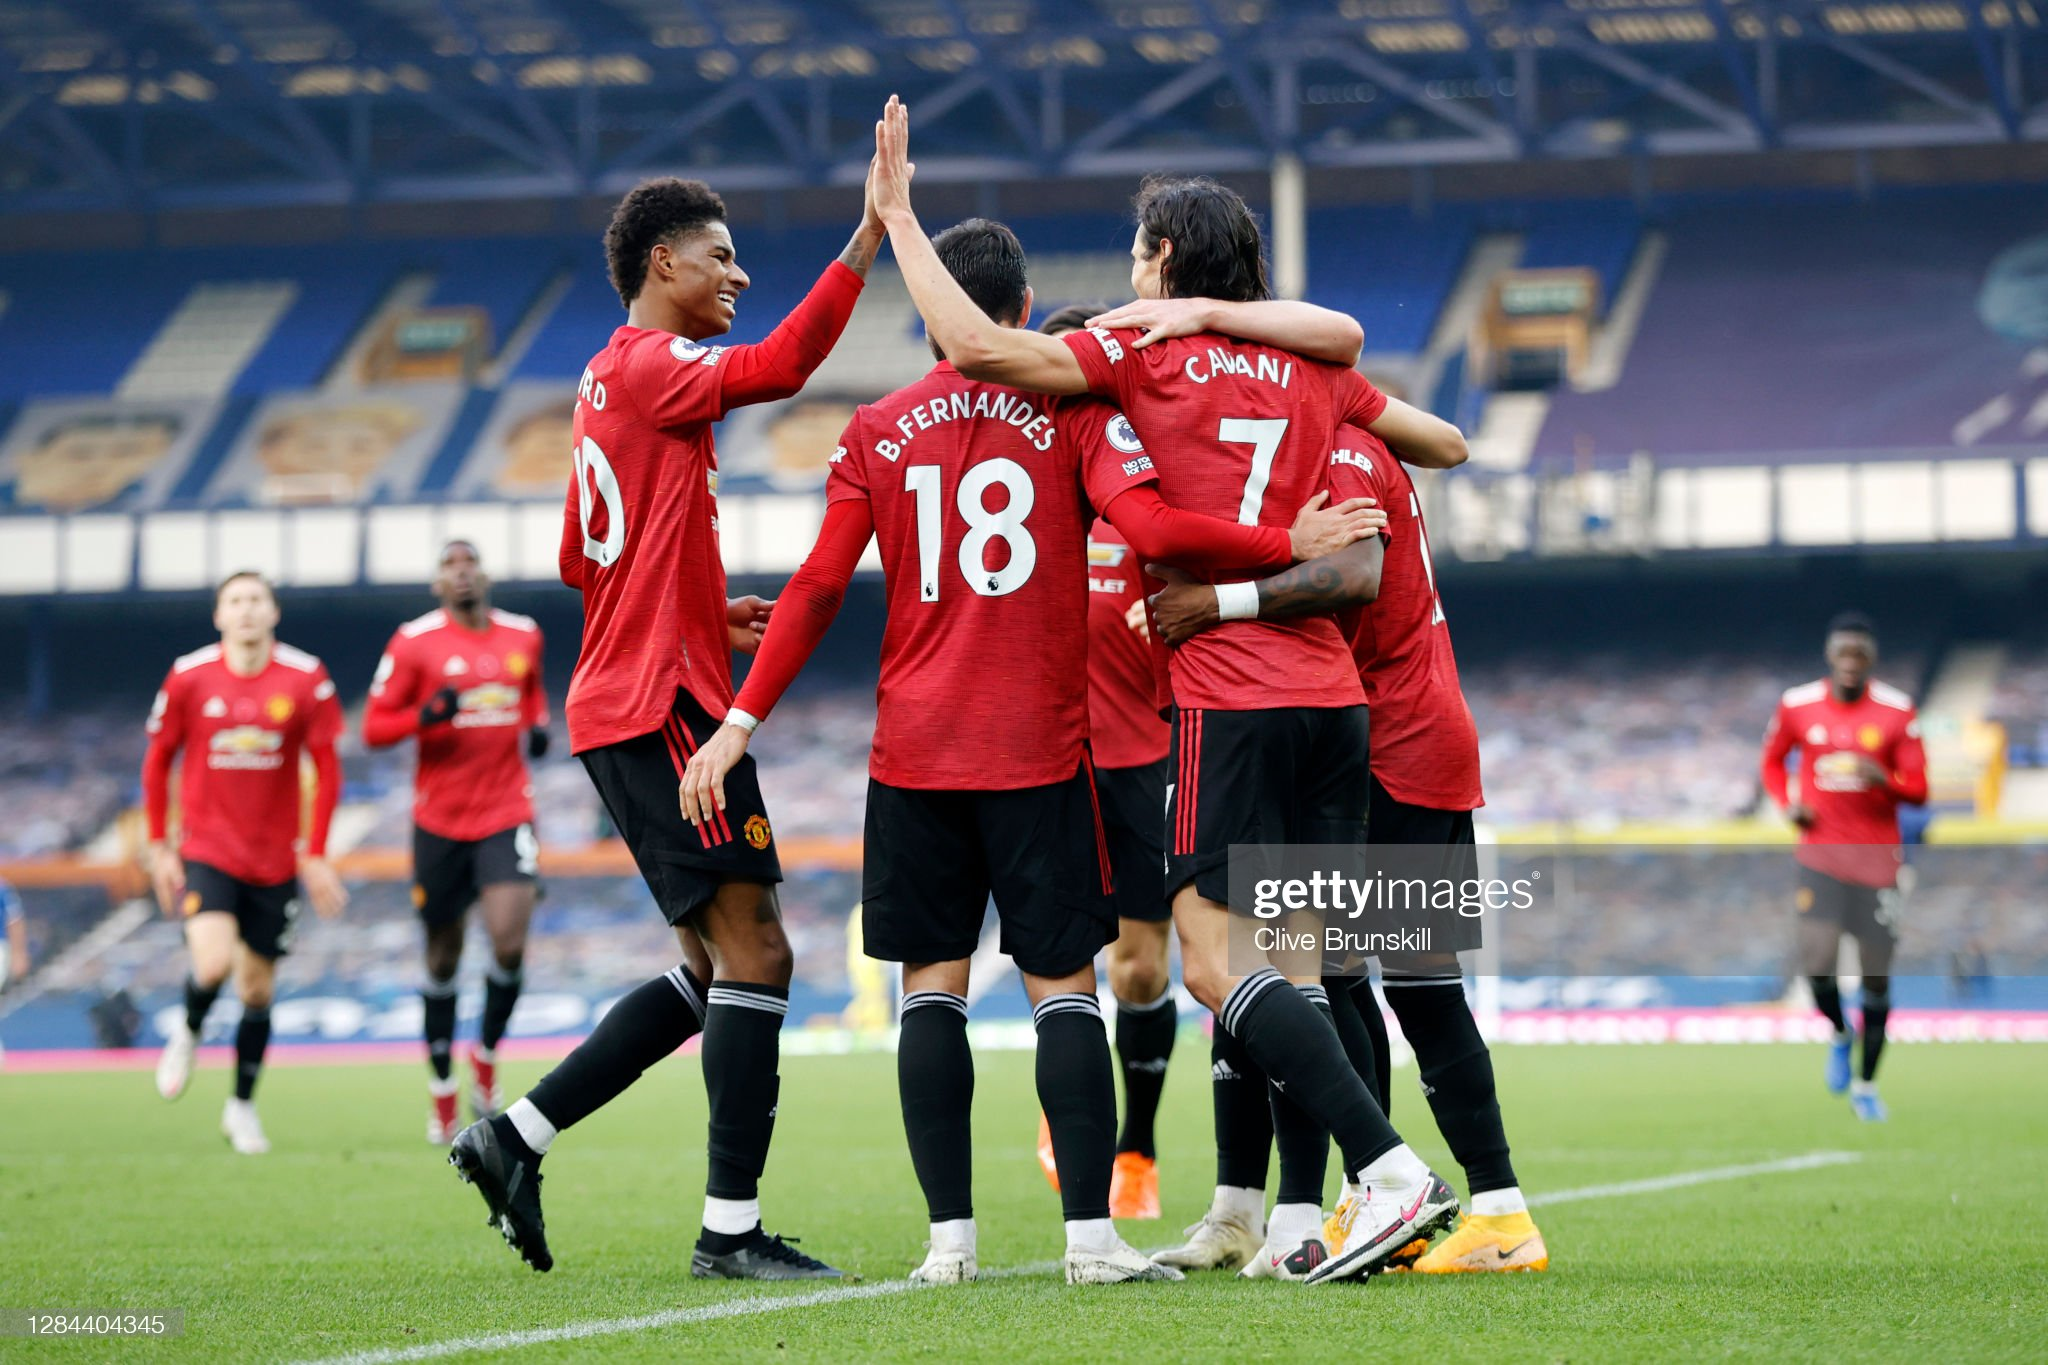 Will Manchester United always be so inconsistent under Solskjaer?